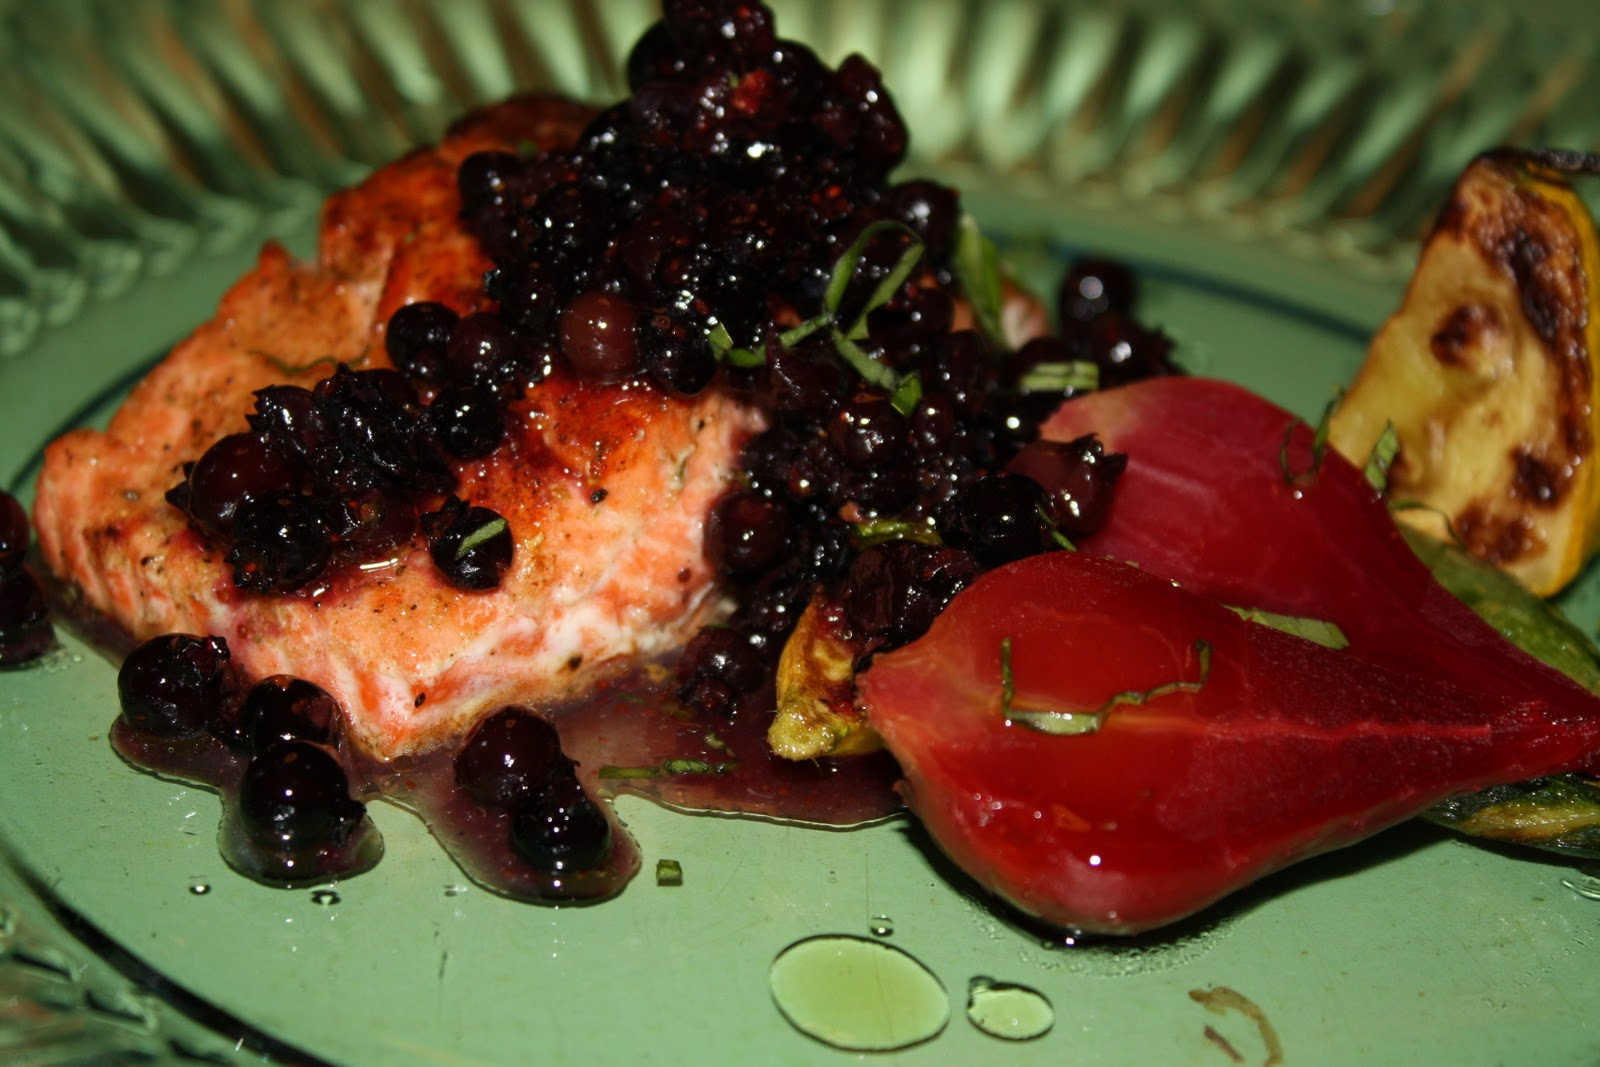 Salmon with Wild Blueberry Salsa and Roasted Beets